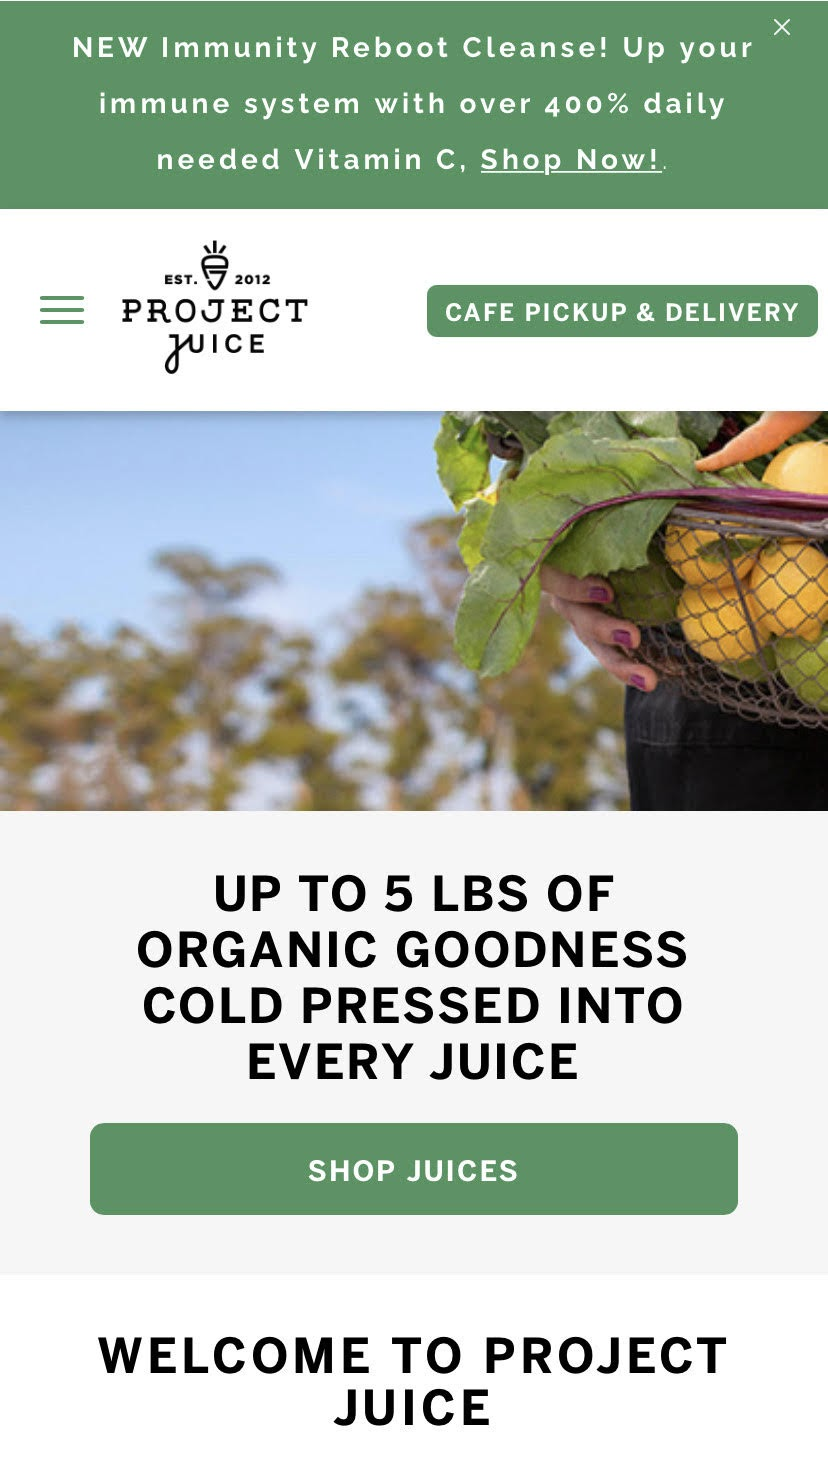 example of an offering a product benefit above the fold on a mobile product page